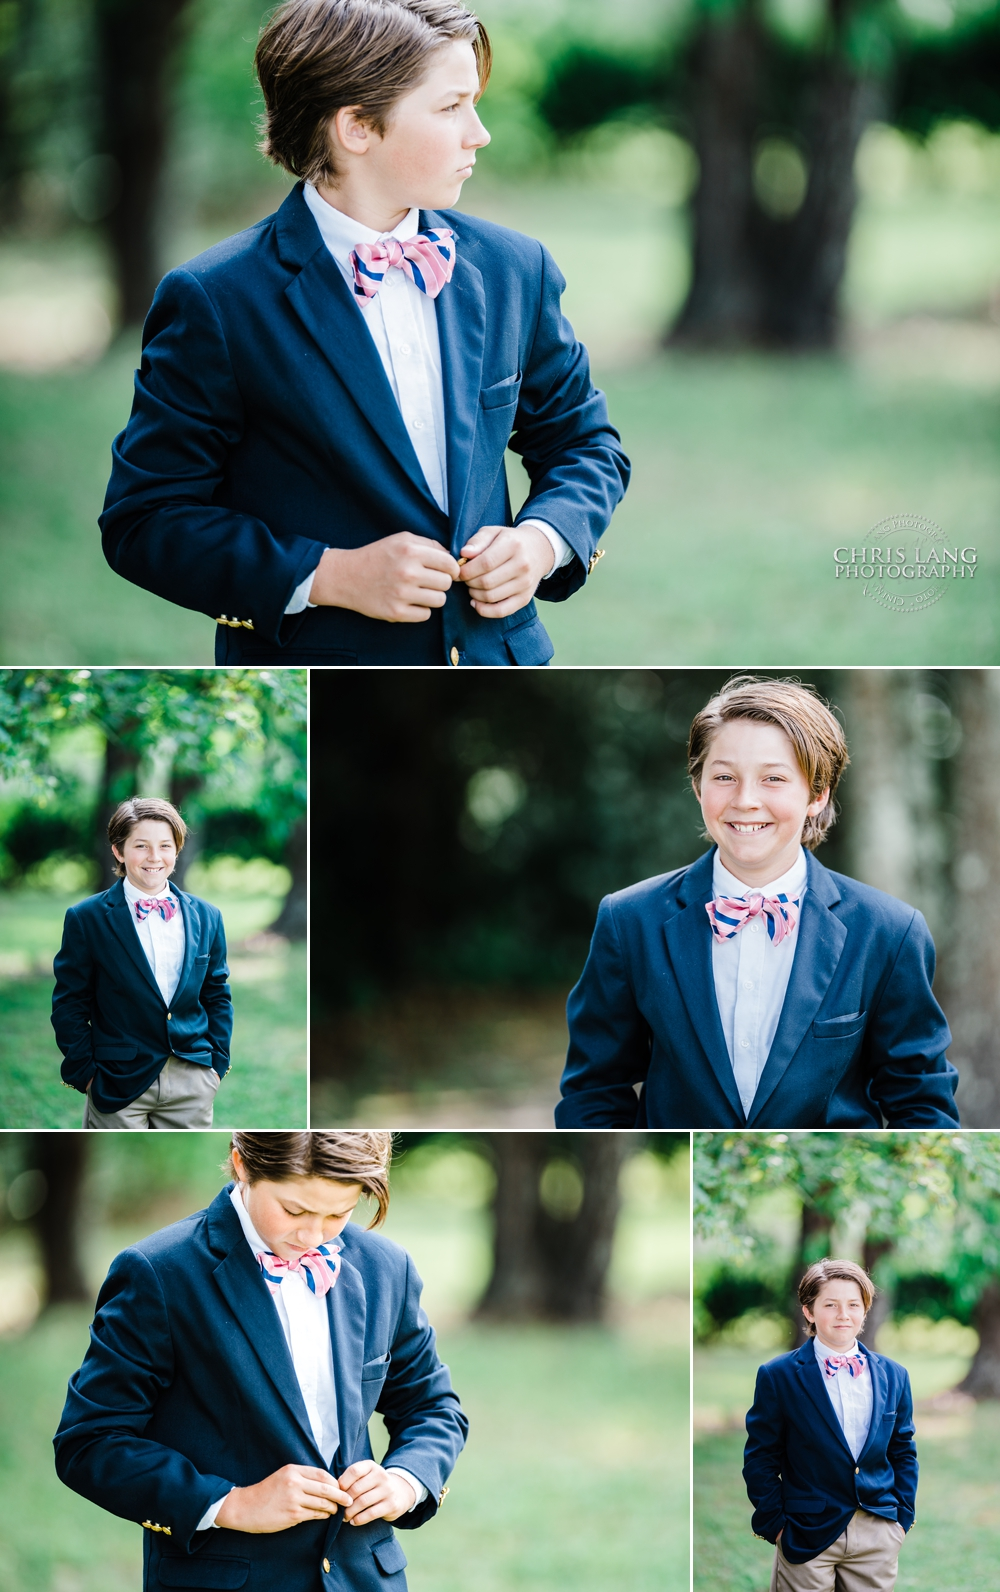 picture of young boy in blue suit wearing a bowtie - kids fashion - kid models - kids GQ - Wilmington NC portrait photography